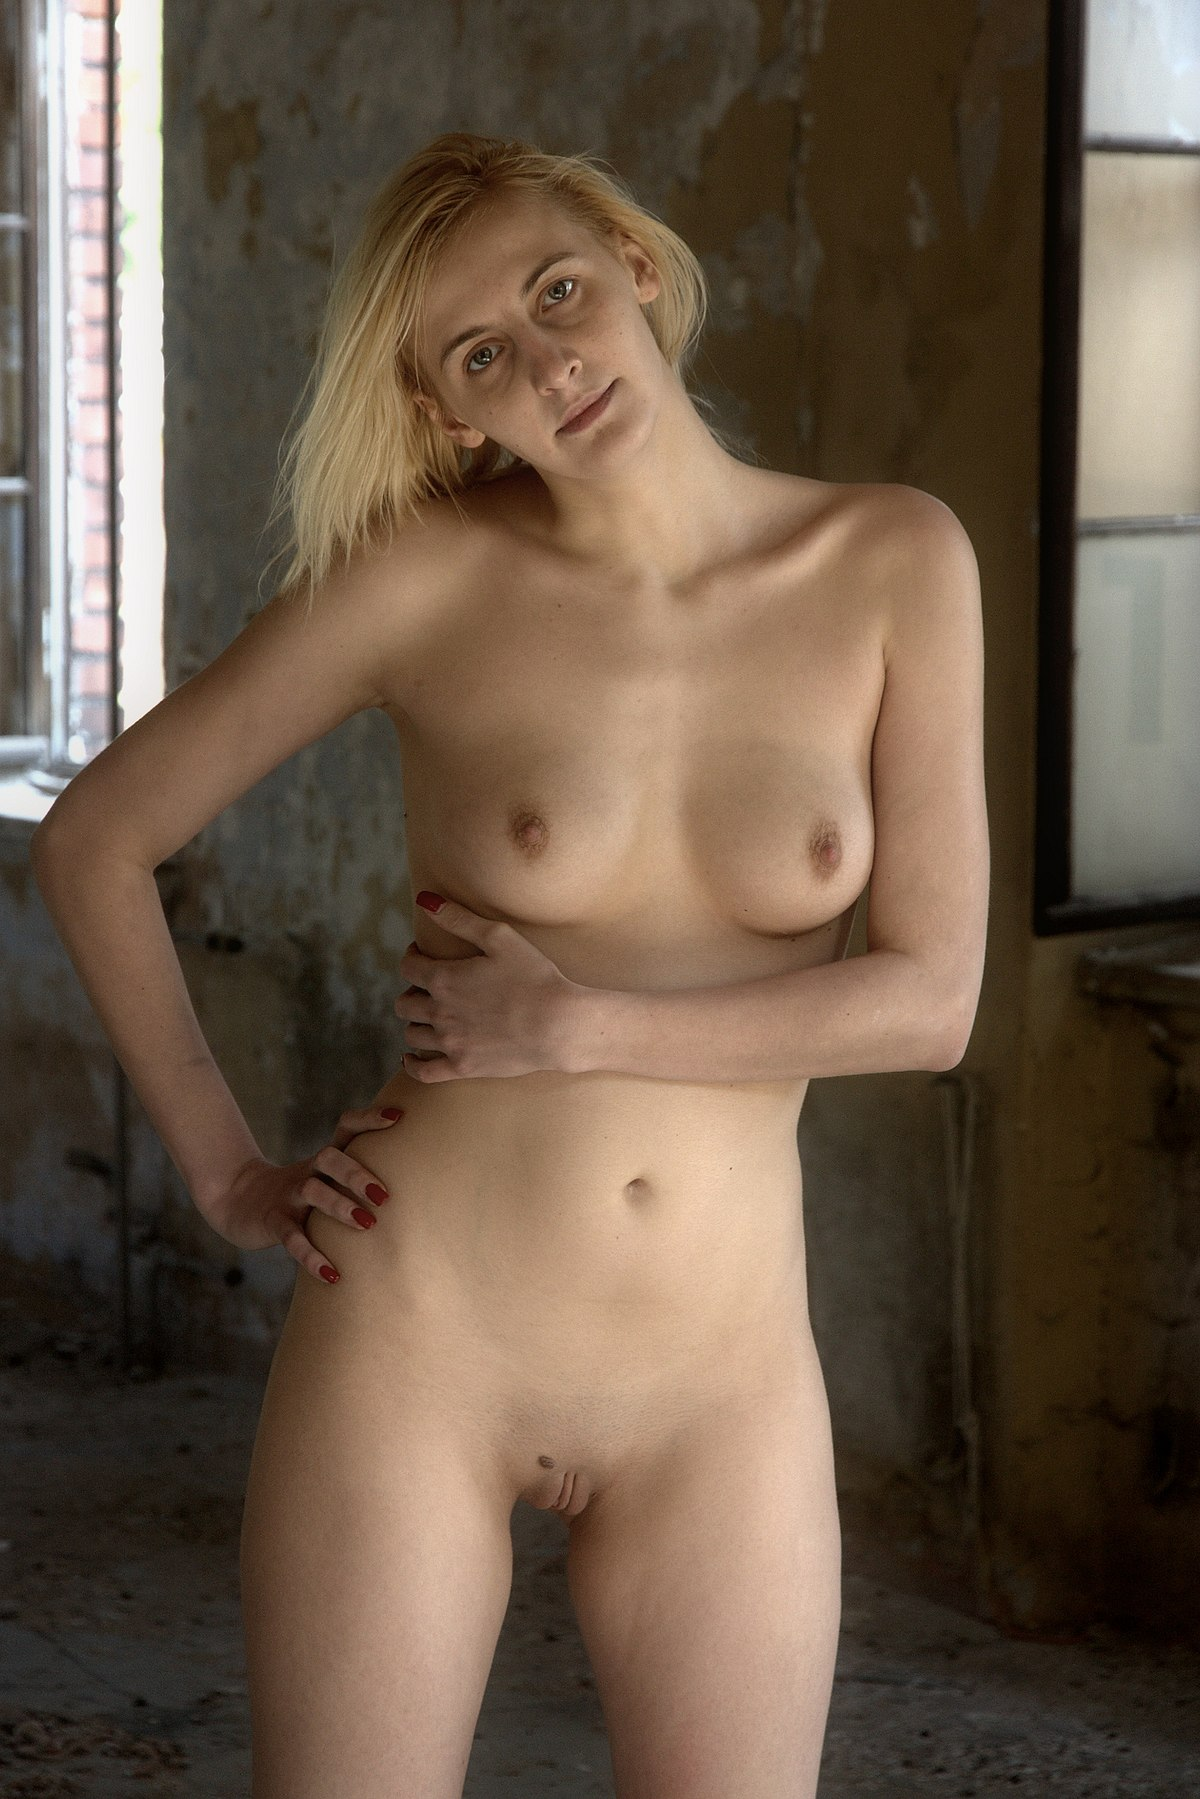 Filebeautiful Nude Womanjpg - Wikimedia Commons-7402